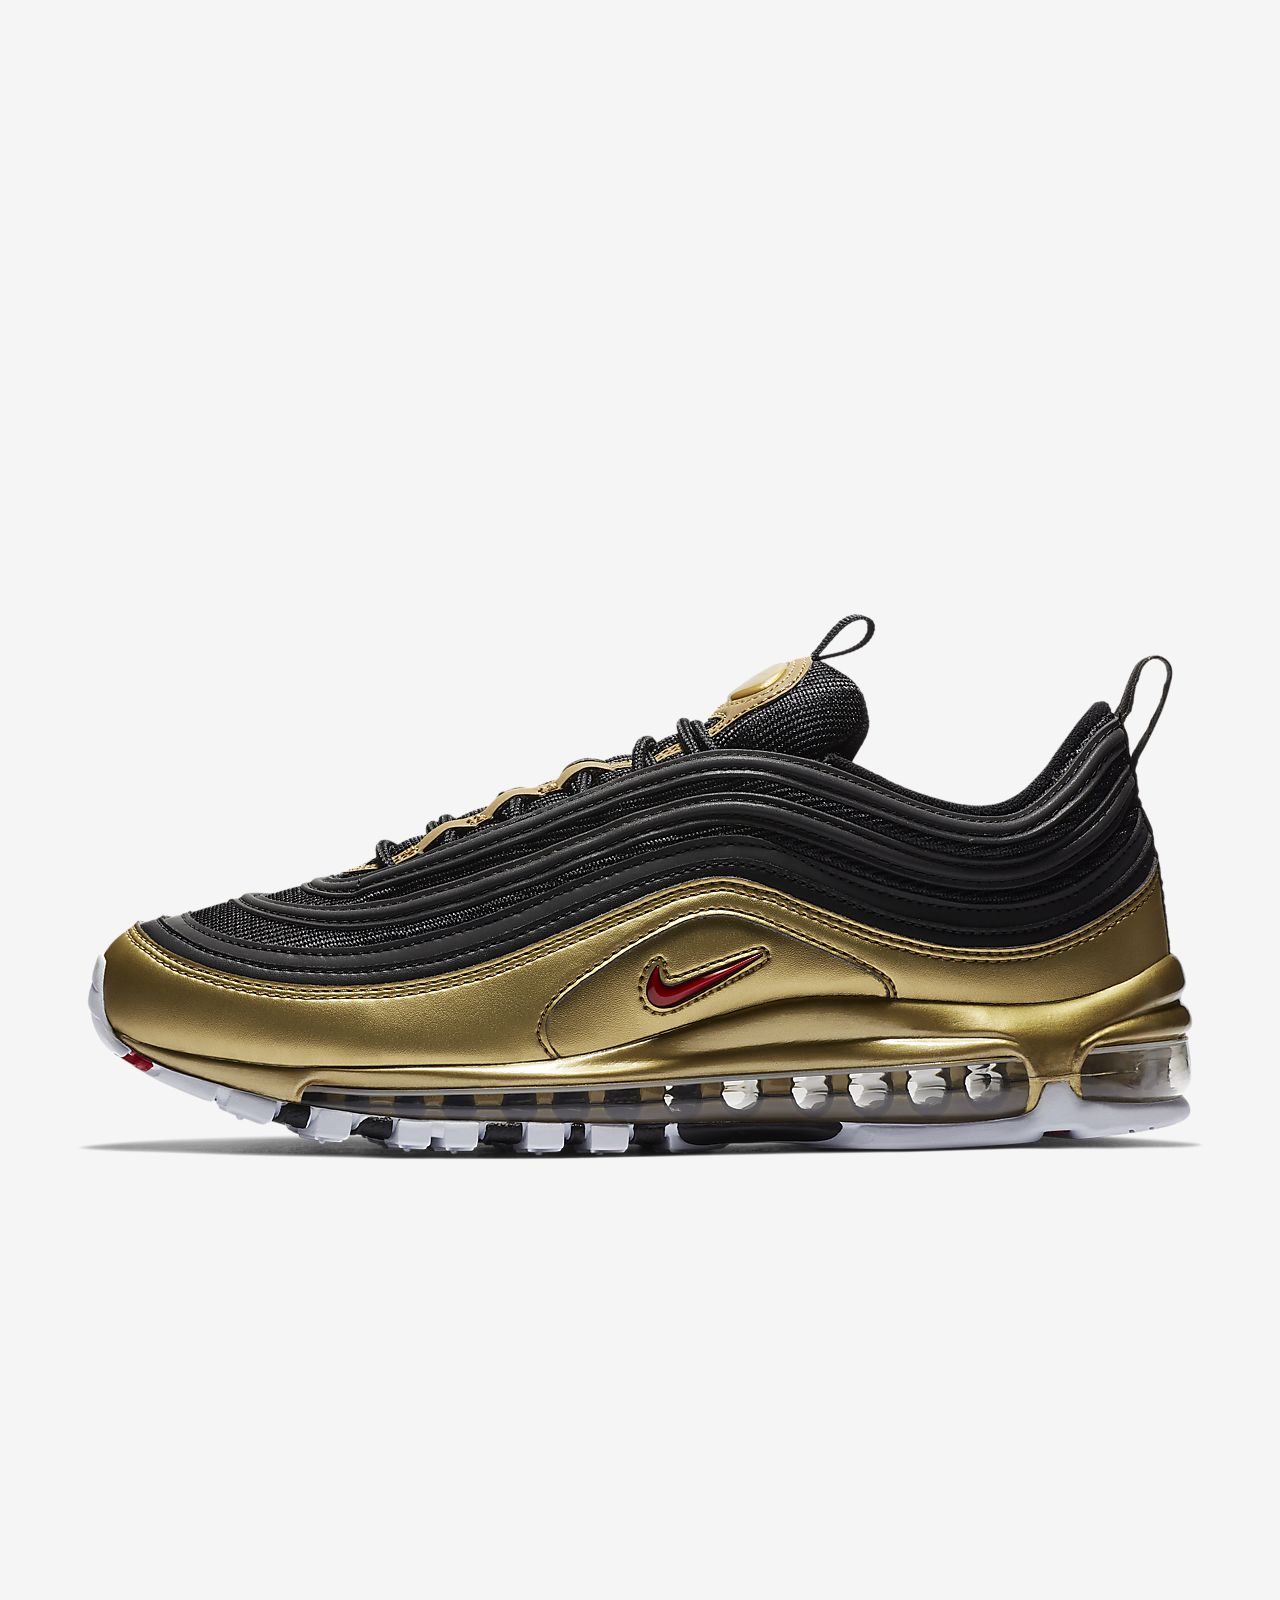 b70030567c Nike Air Max 97 QS Men's Shoe. Nike.com